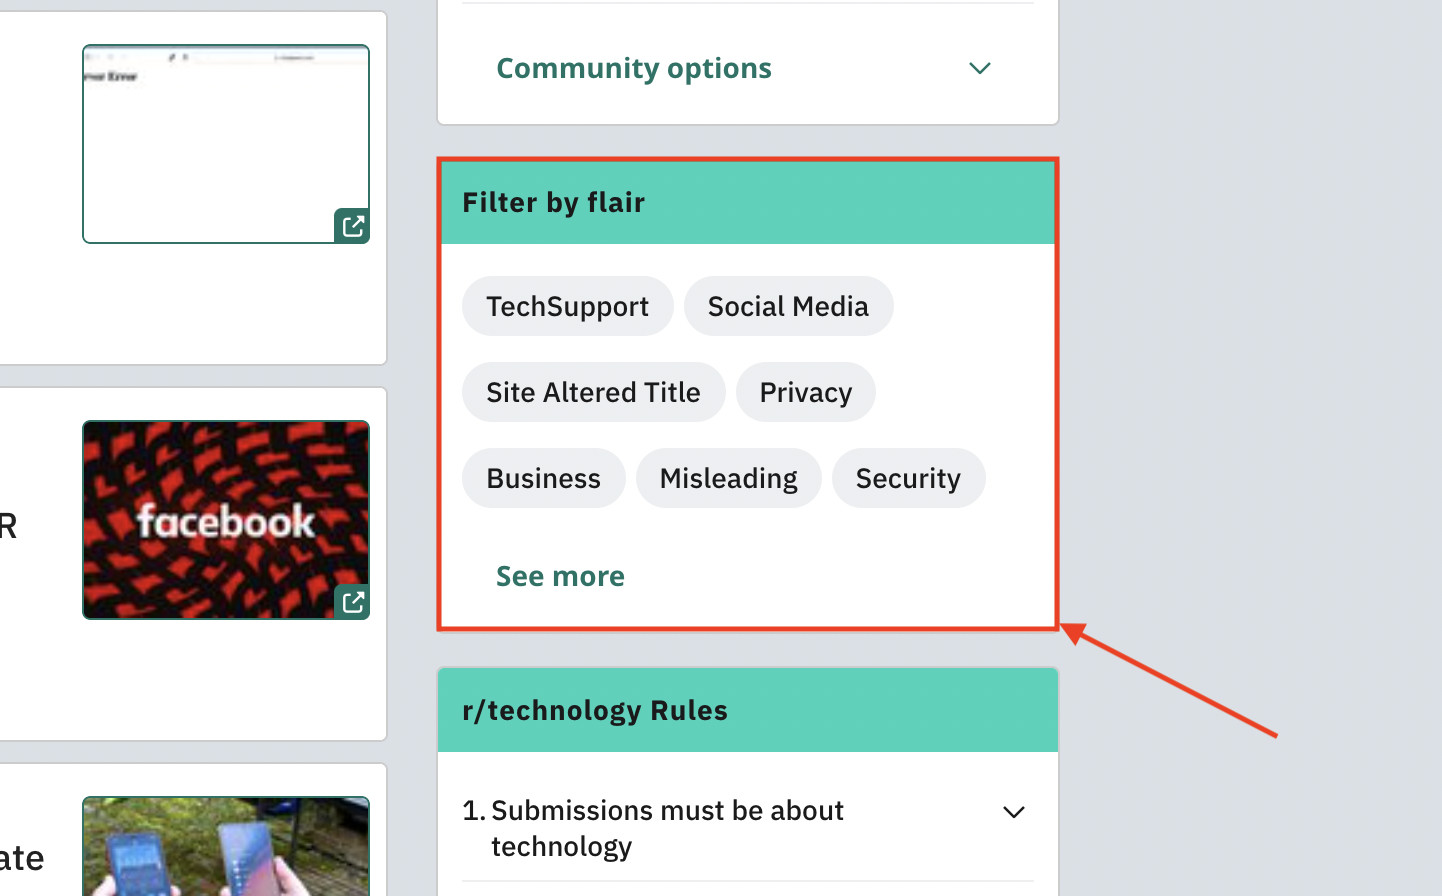 The ability to filter by flair on r/Technology